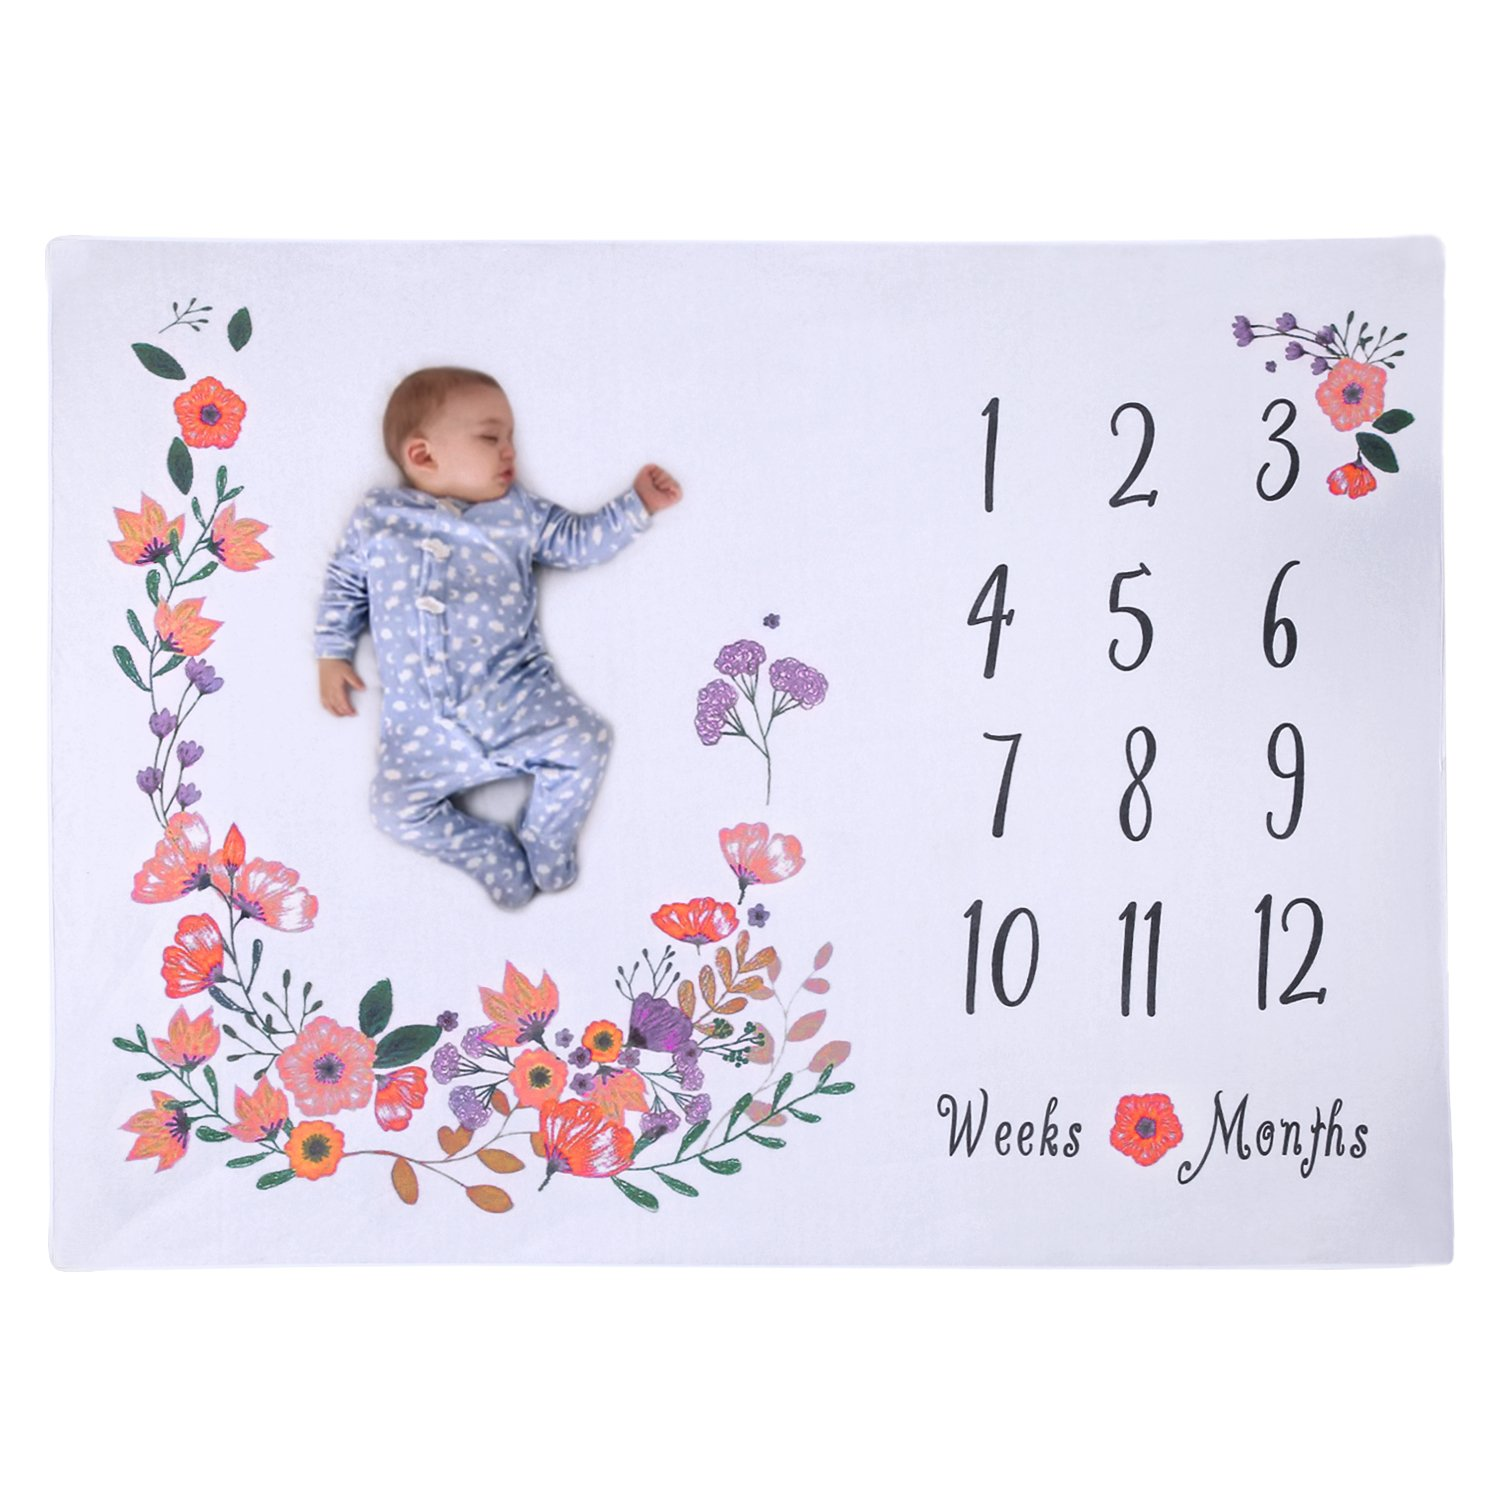 PrimBella Baby Monthly Milestone Blanket - Photography Backdrop Photo Prop for Girls - Perfect Baby Shower Gift for New Moms - Reusable Premium Fleece Baby Blanket - Extra Soft Large 50 x 40 Size